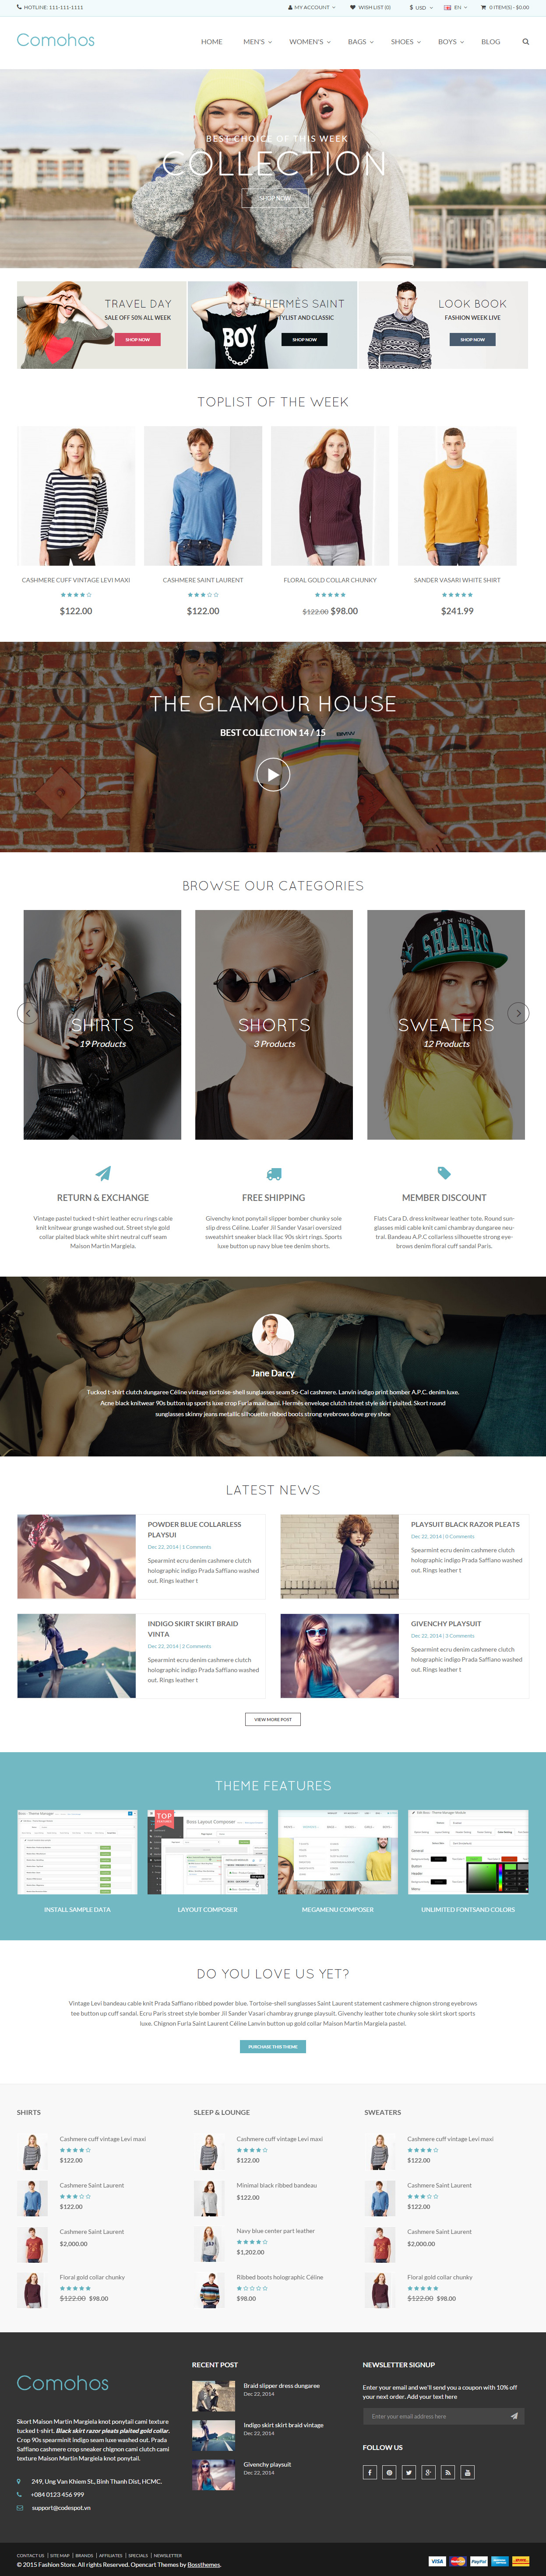 5+ Best Responsive Opencart Parallax Scrolling Themes 2019